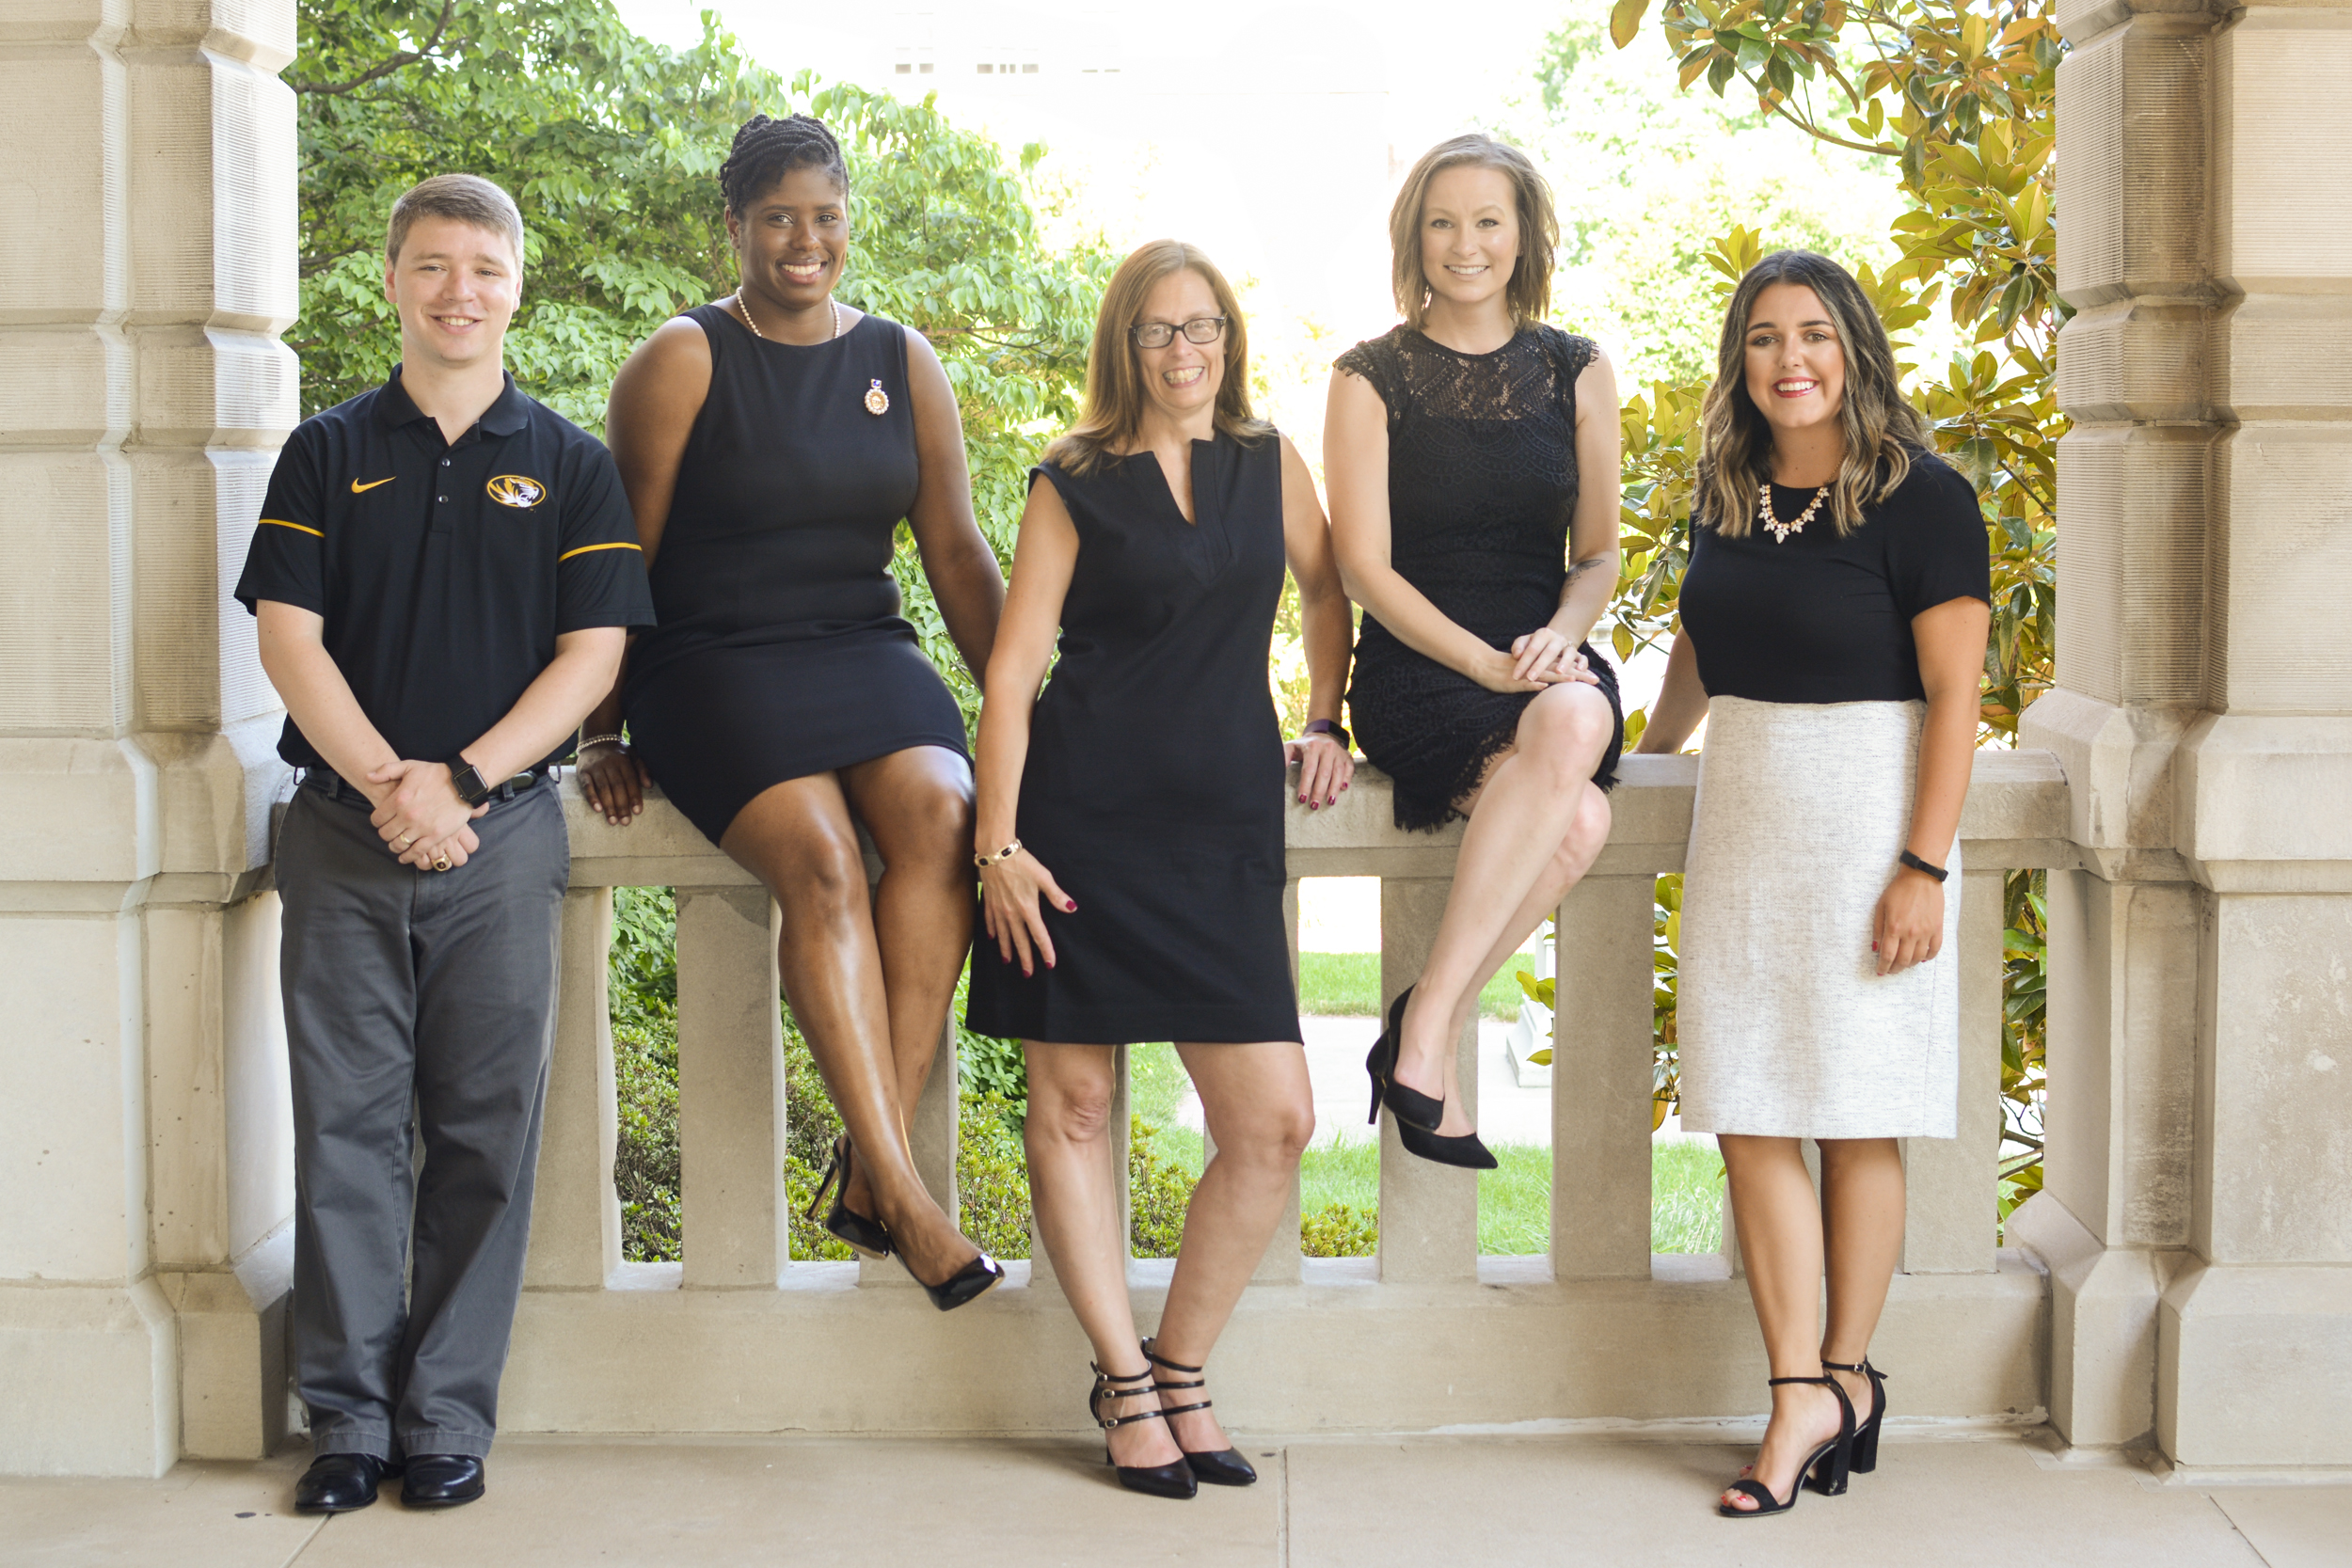 e8f5d2f0291 Contact Us    Fraternity   Sorority Life    University of Missouri